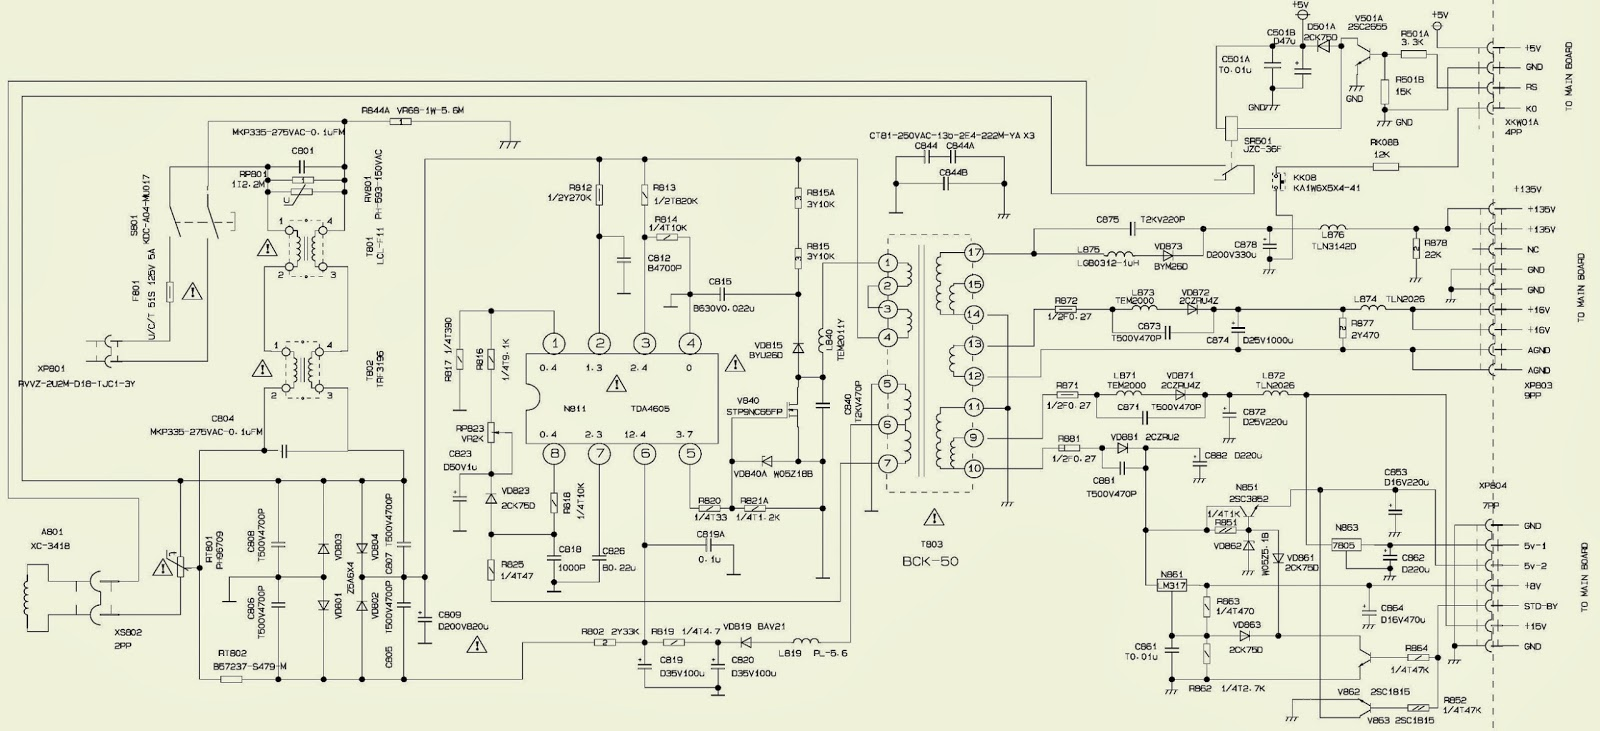 AT3208S - APEX TV - SMPS SCHEMATIC (Power Supply Circuit ...